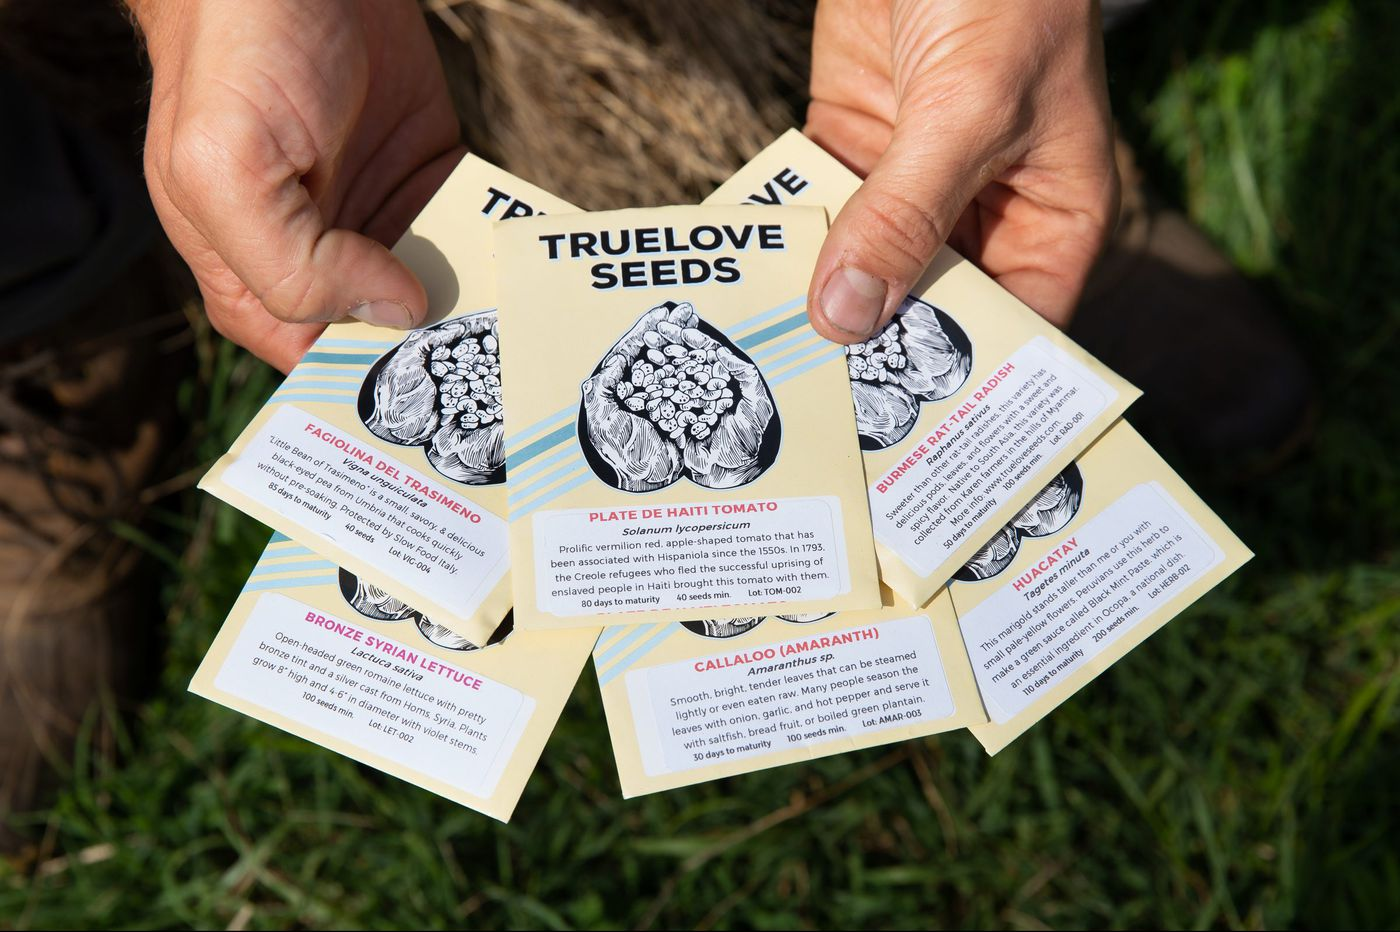 Truelove prizes seeds and stories from around the world